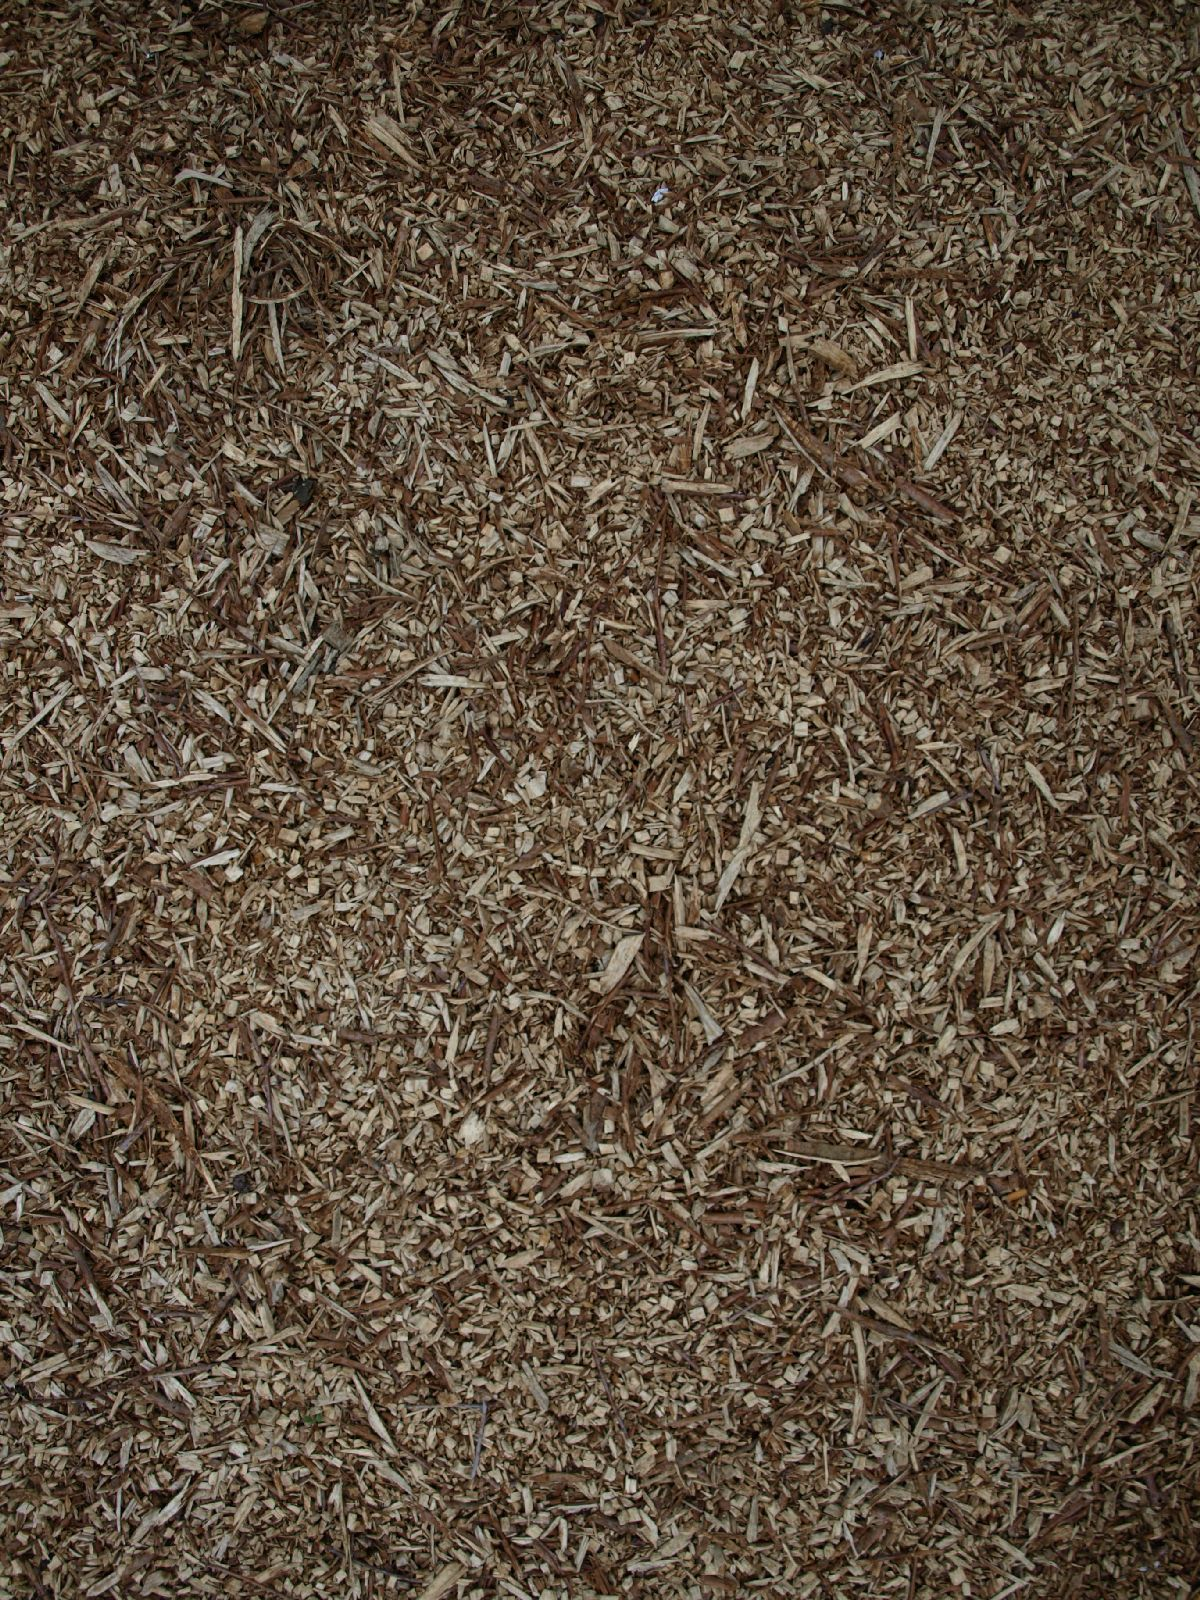 Ground-Nature_Texture_A_P4131226